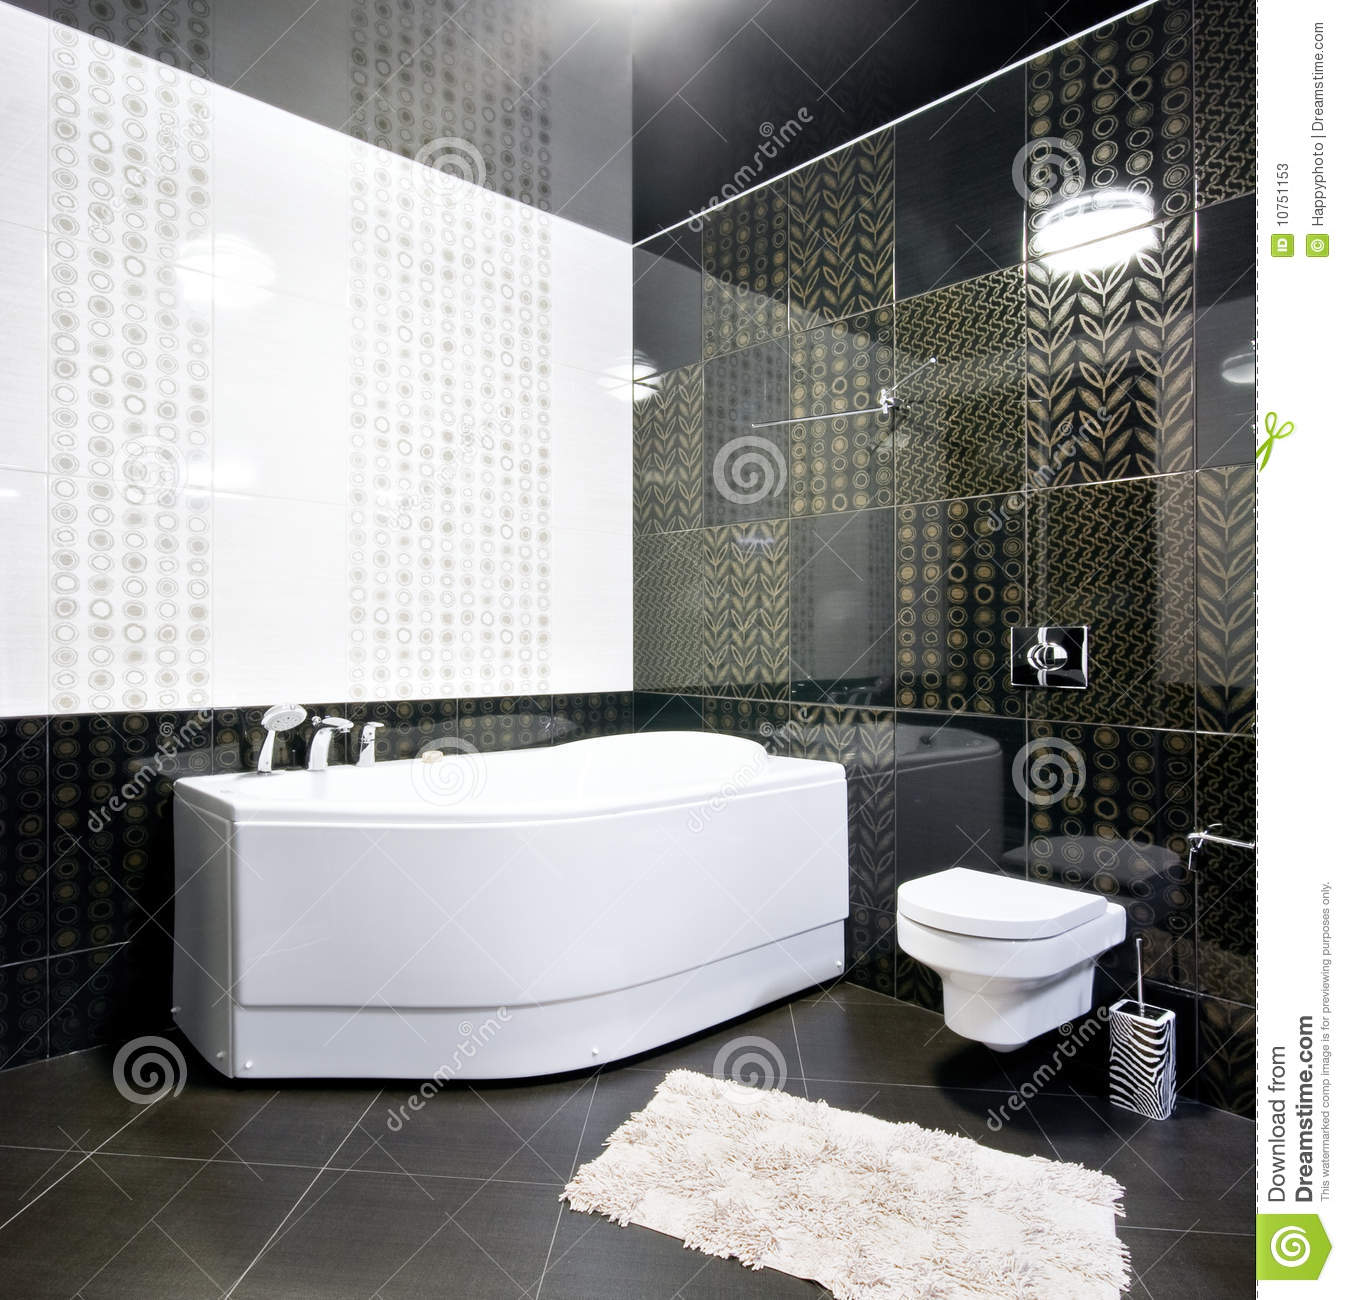 Black And White Bathroom Interior Stock Image